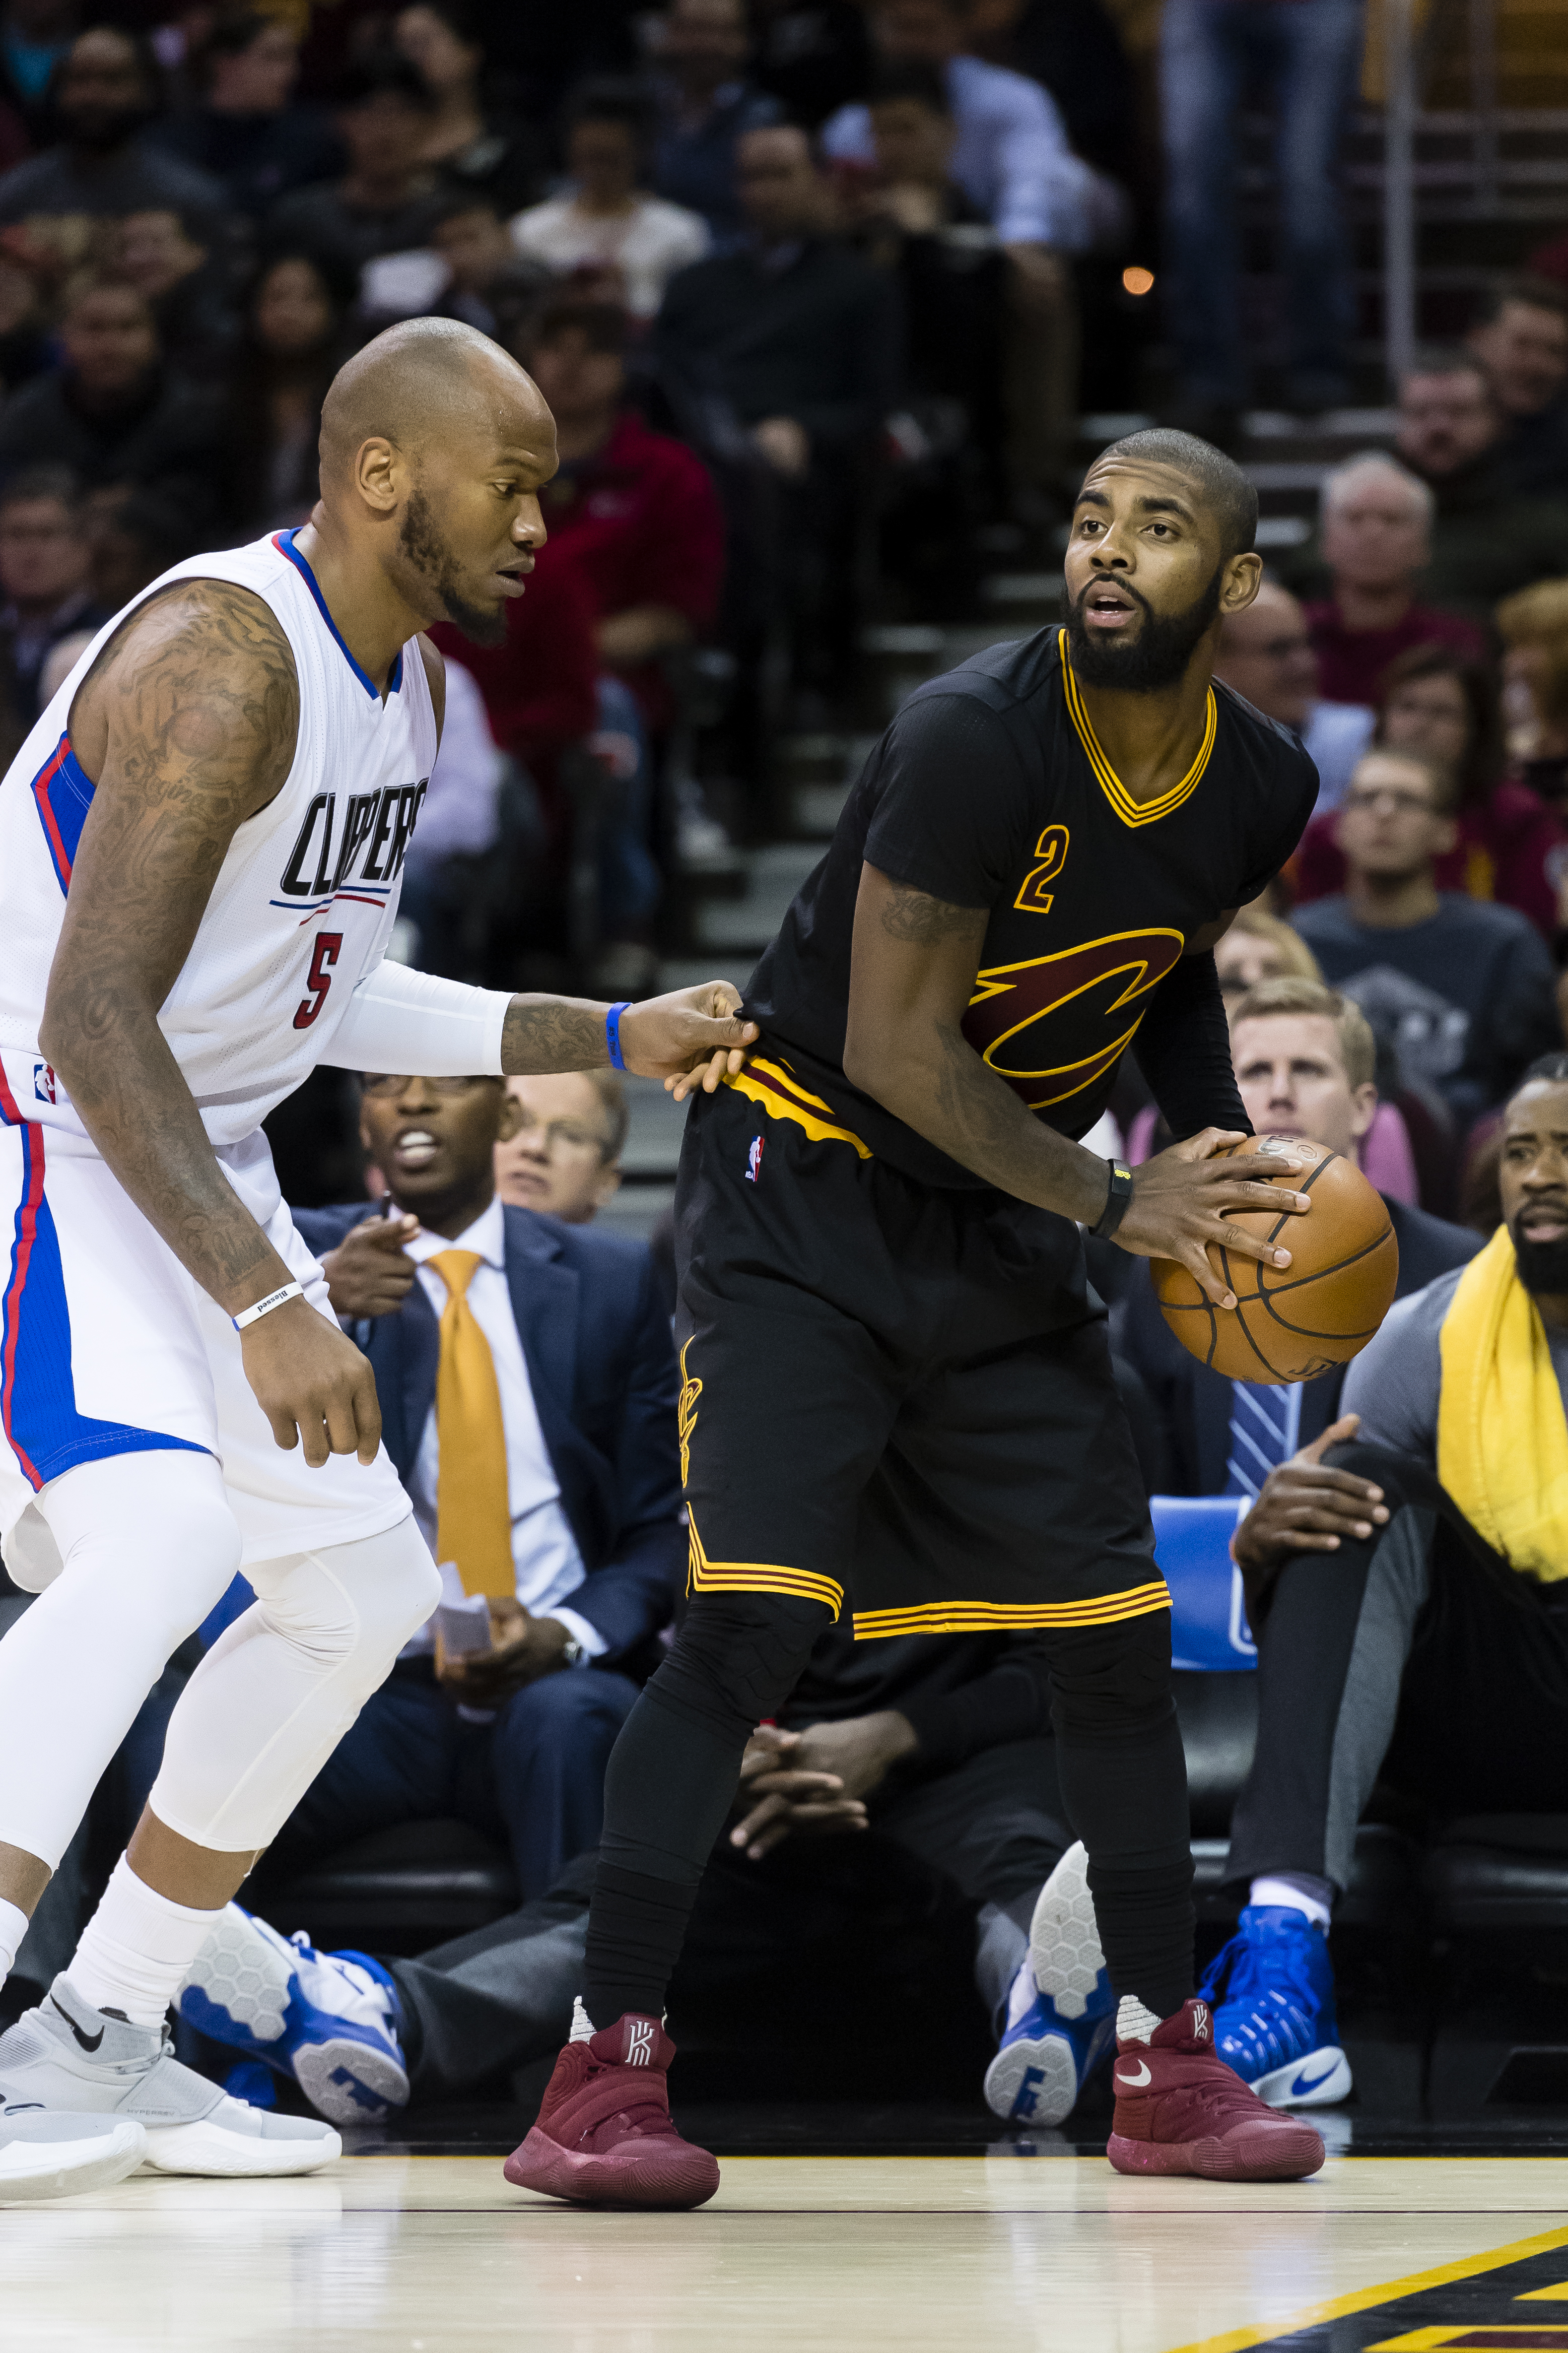 643991038-los-angeles-clippers-v-cleveland-cavaliers.jpg